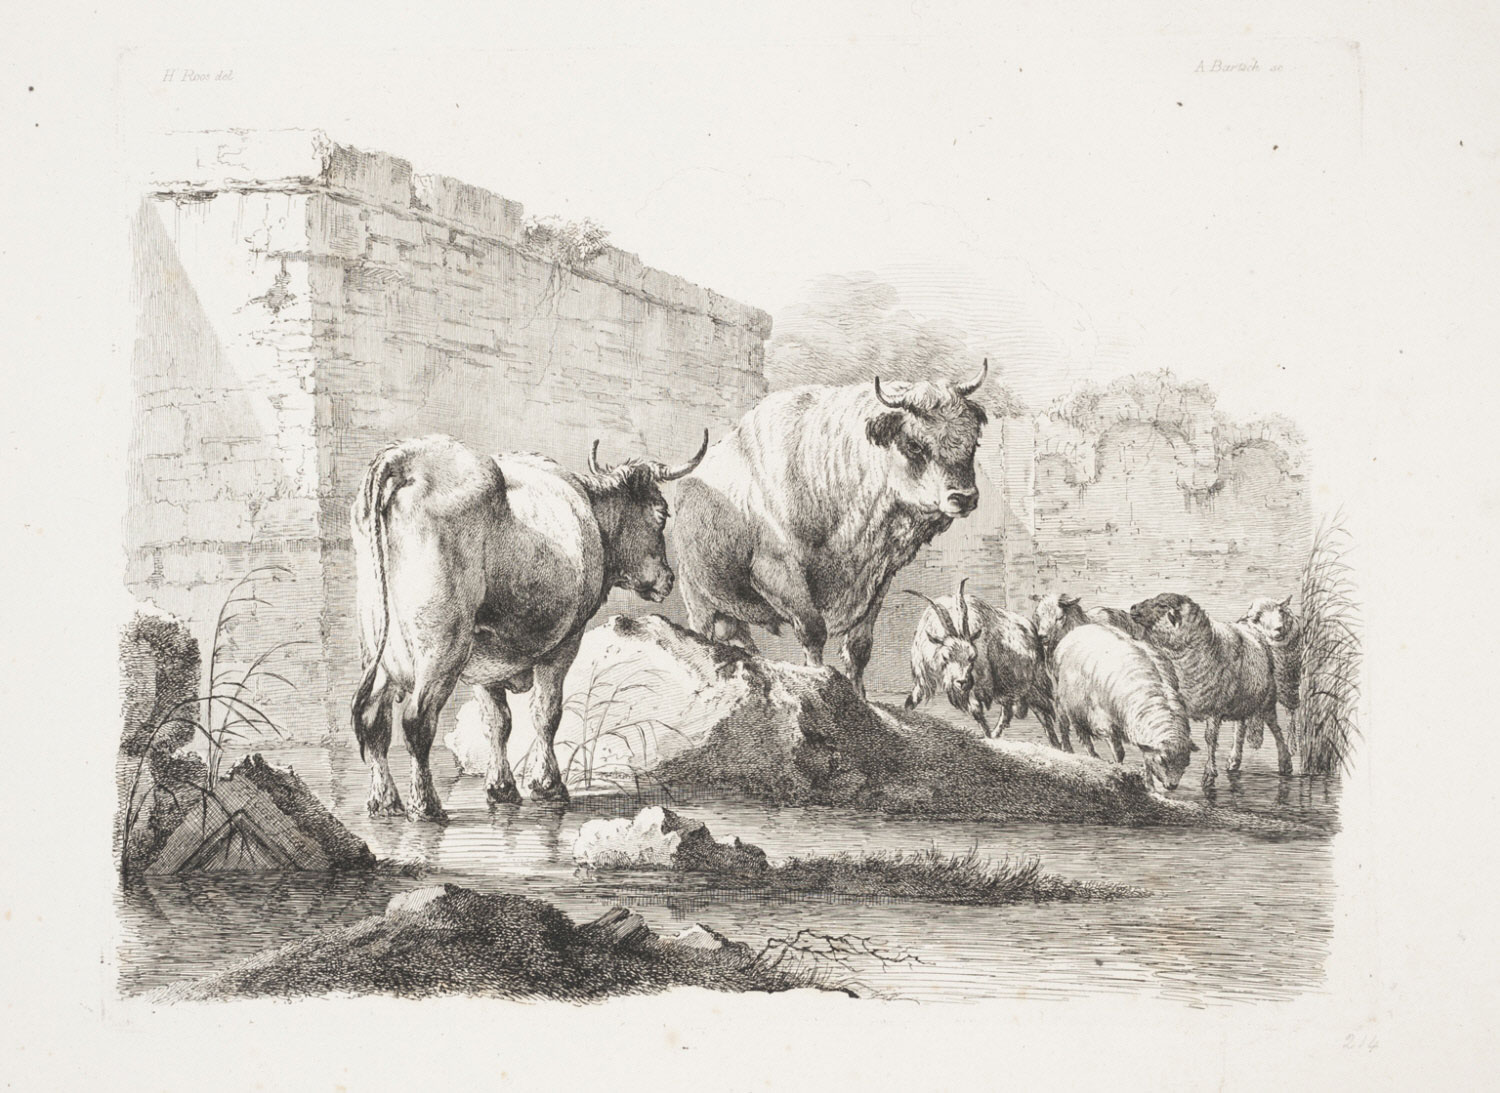 A Cow, a Bull, Sheep, and a Goat by a Stream